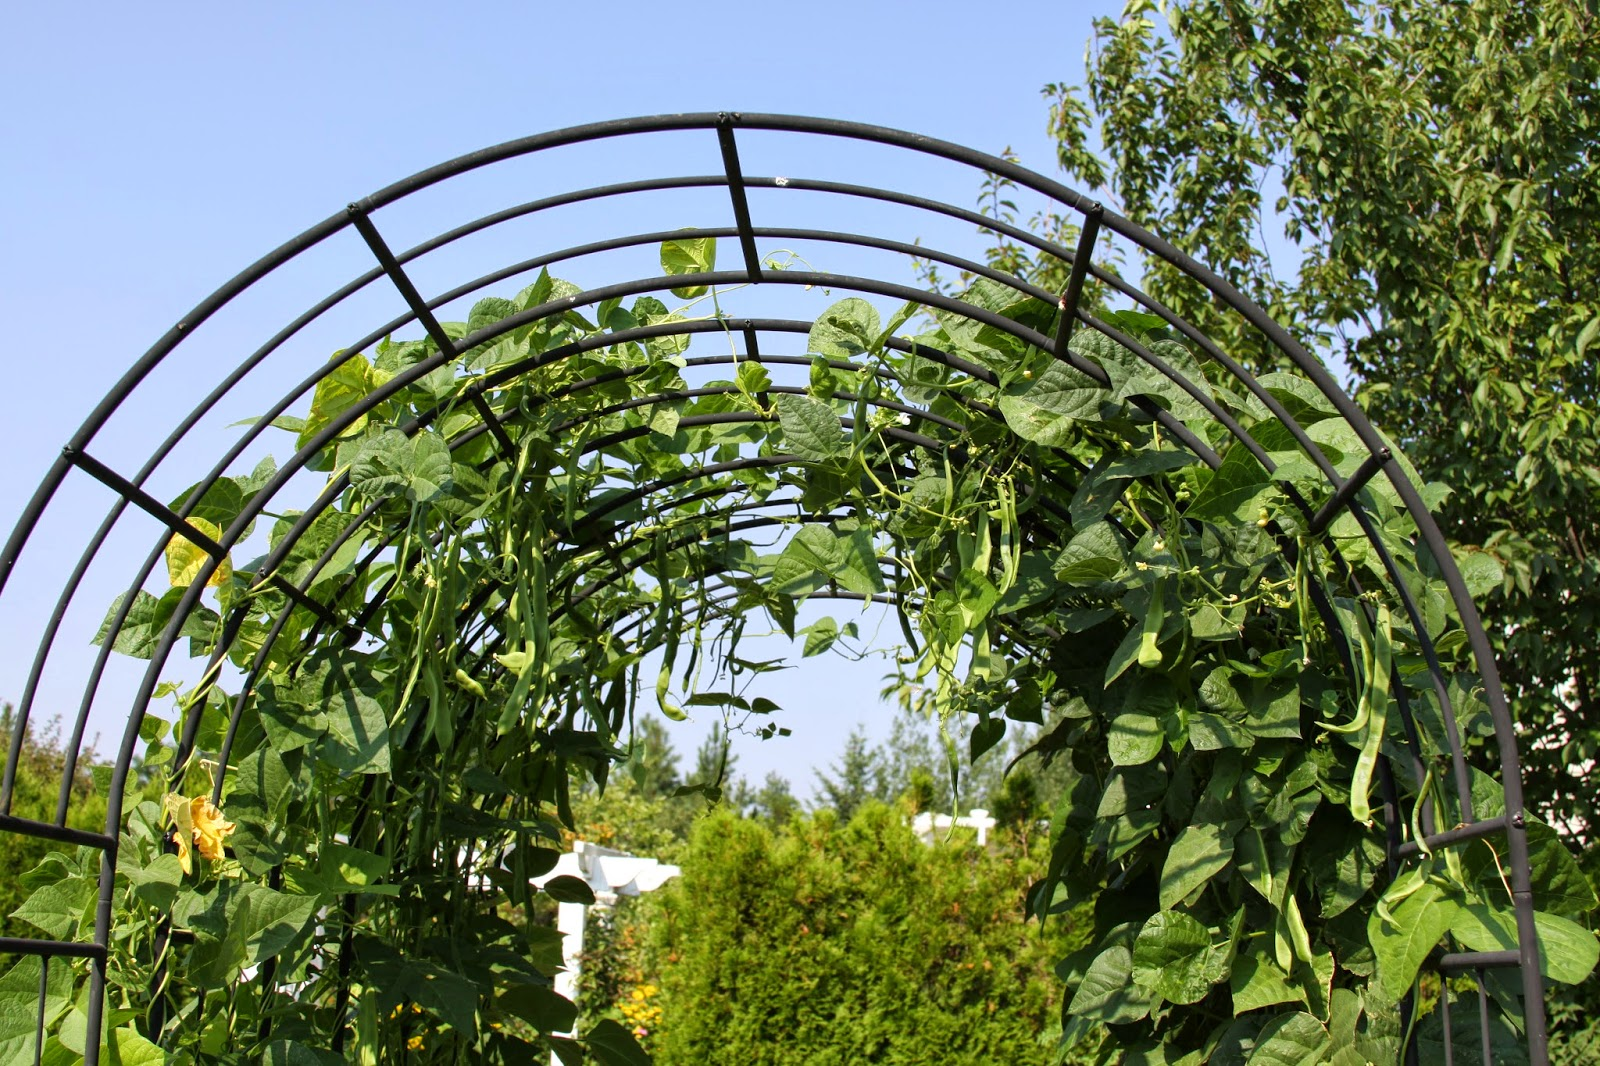 Awesome Pole Bean Trellis Ideas Part - 14: Pole Bean Trellis